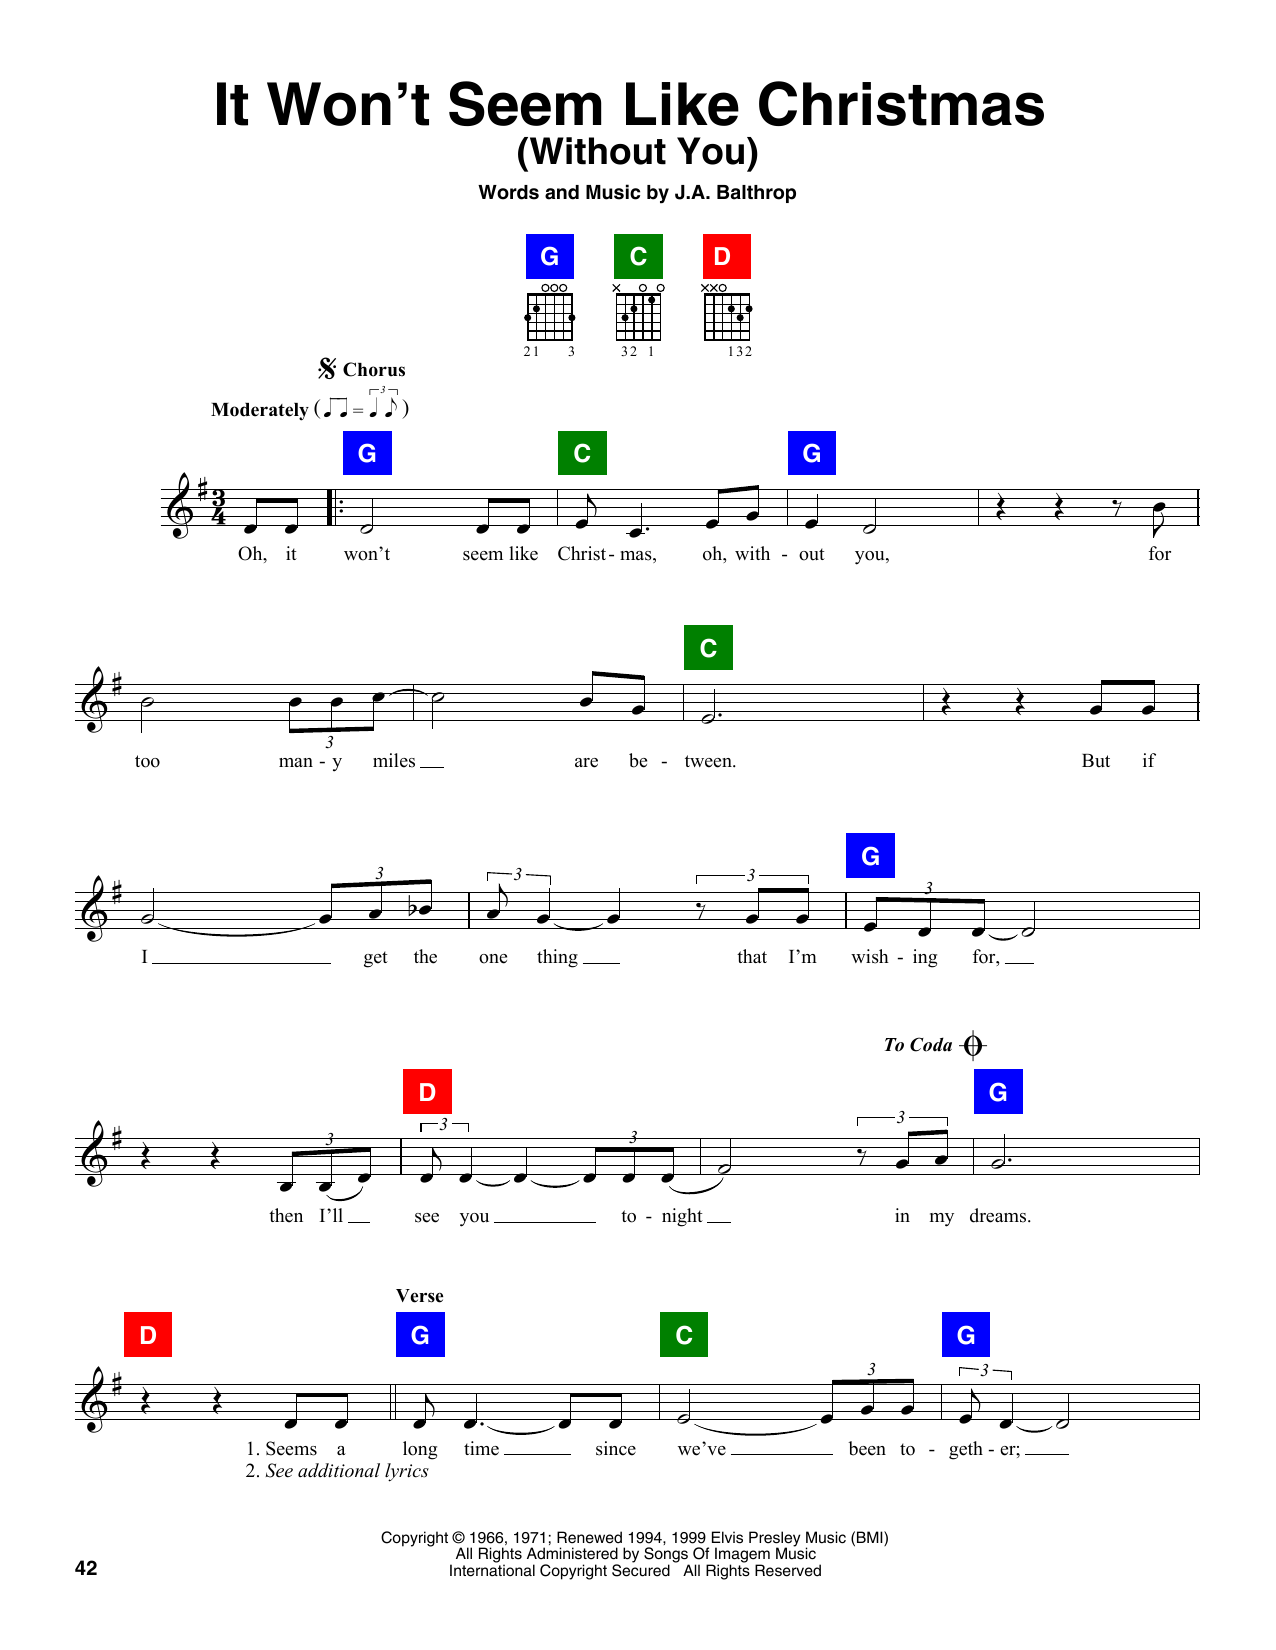 Download J.A. Balthrop 'It Won't Seem Like Christmas (Without You)' Digital Sheet Music Notes & Chords and start playing in minutes